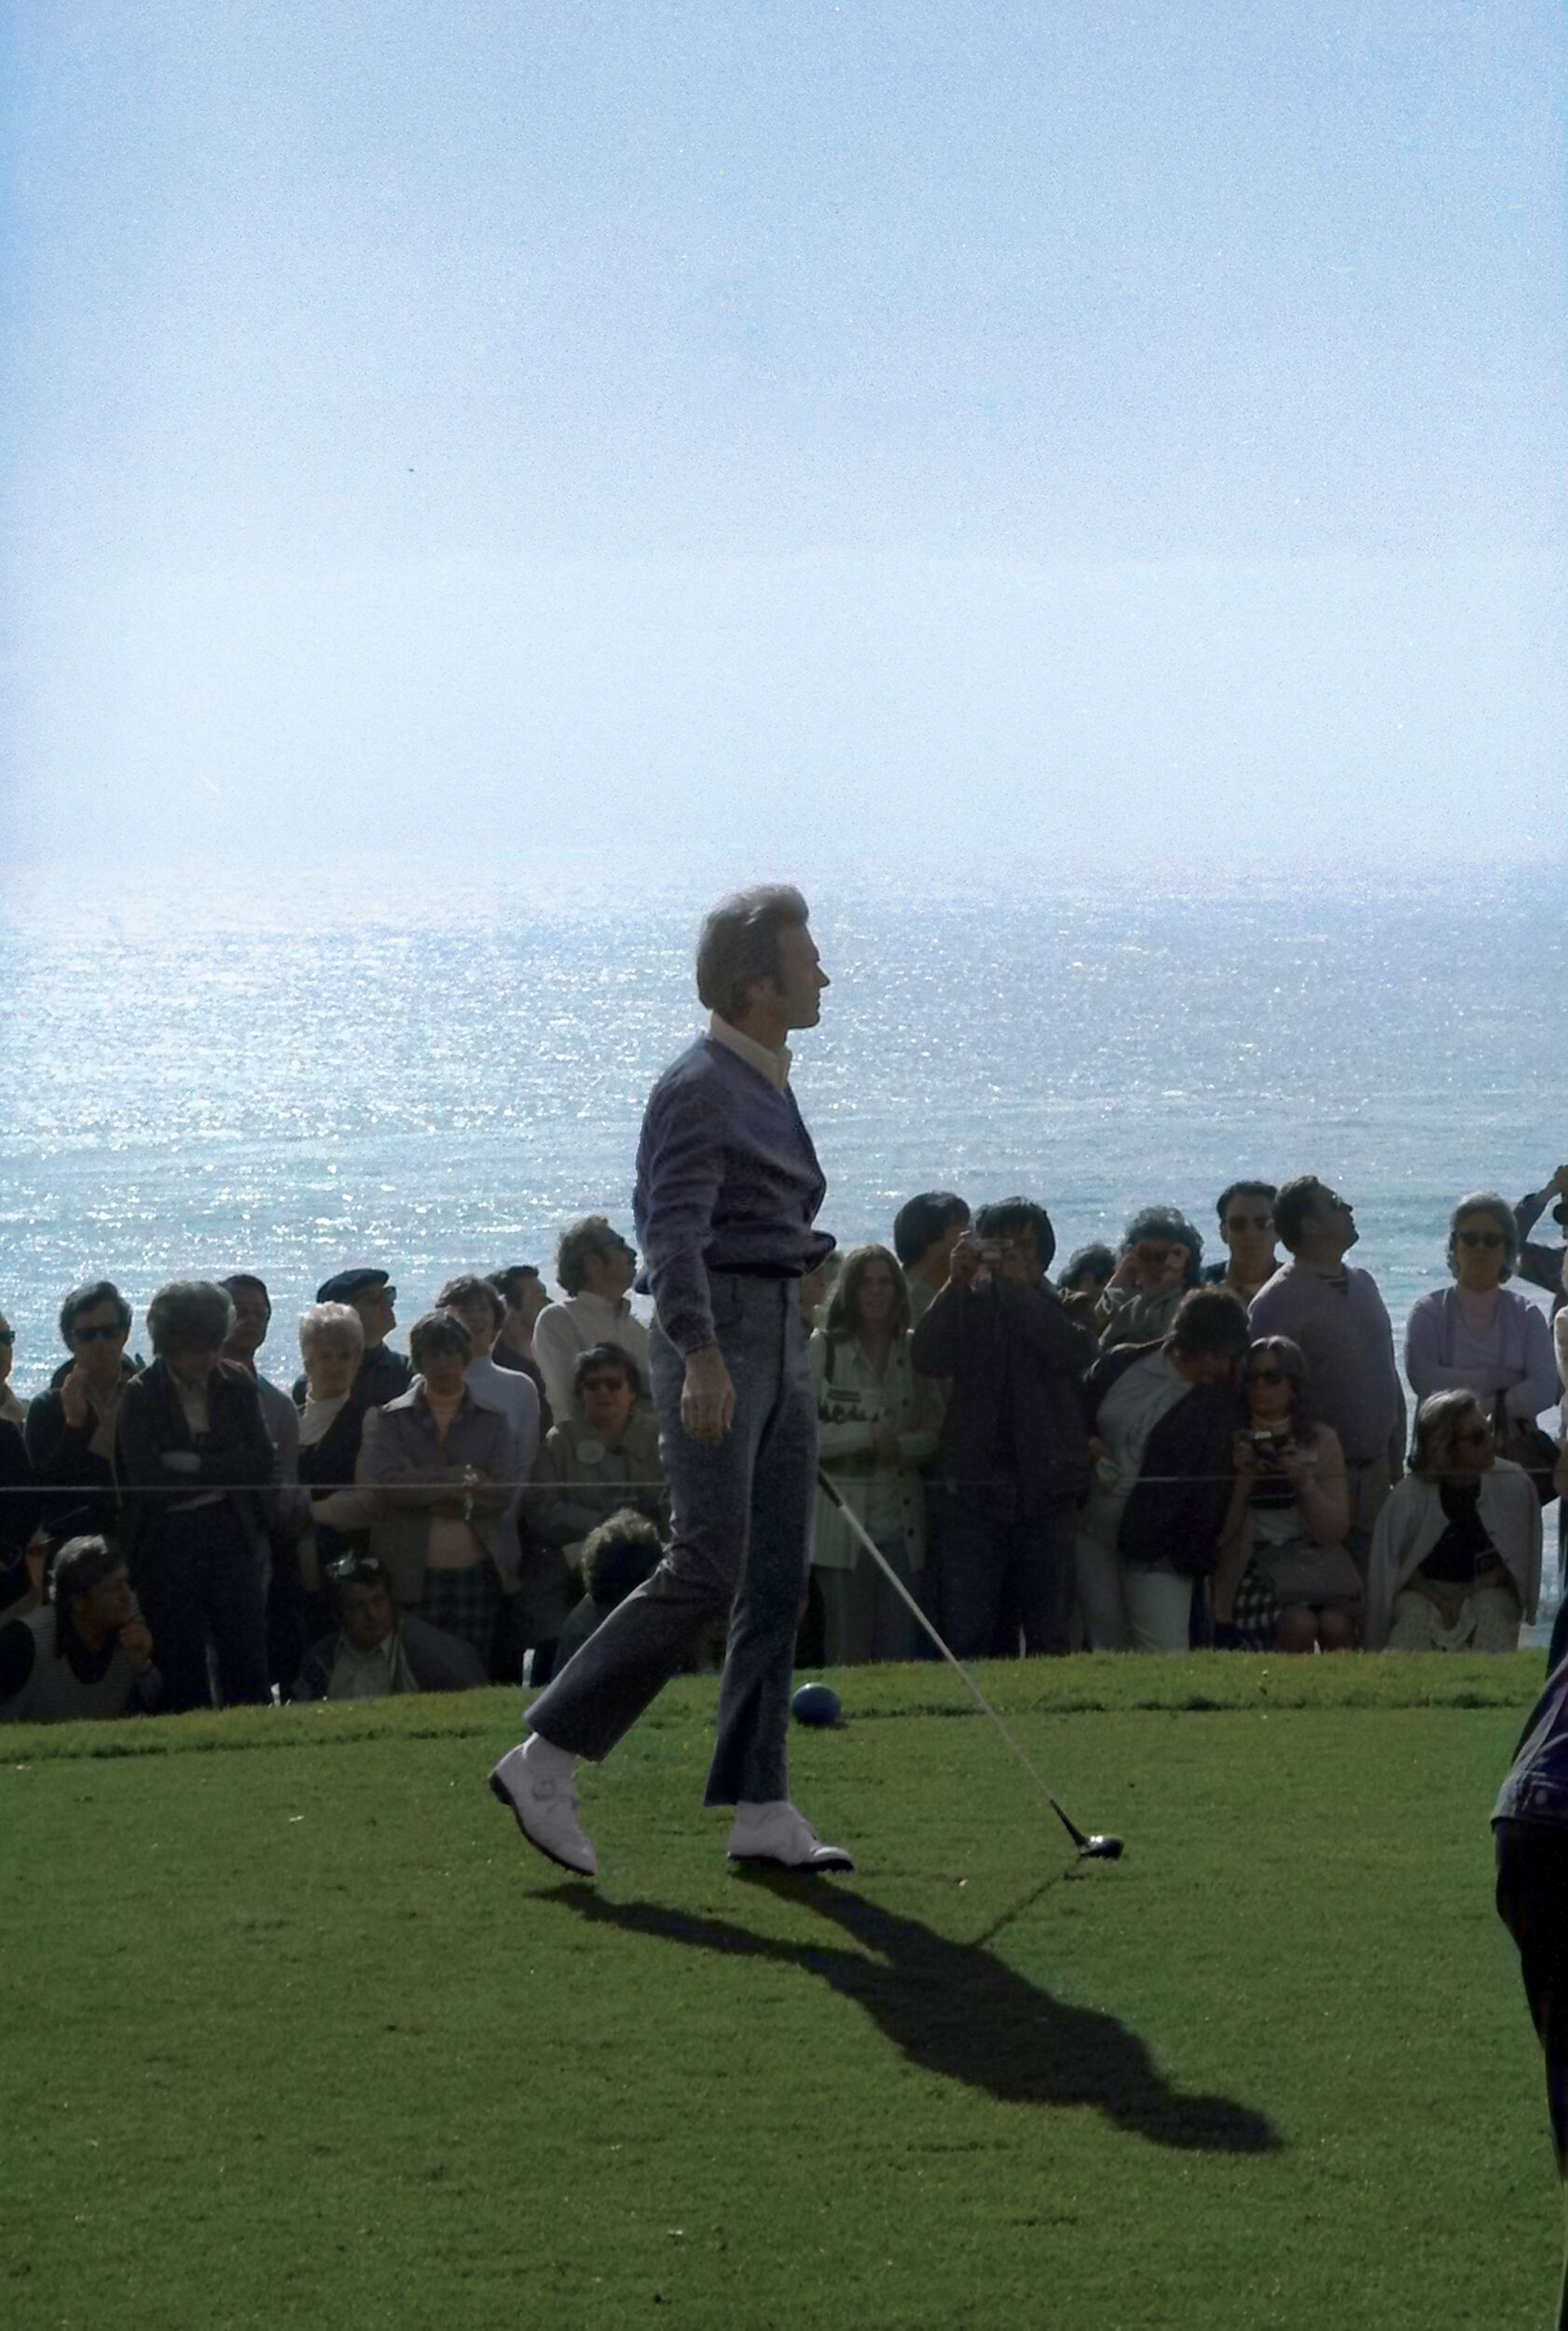 A young Clint Eastwood tracks his tee shot down the fairway at the AT&T Pebble Beach Pro-Am.